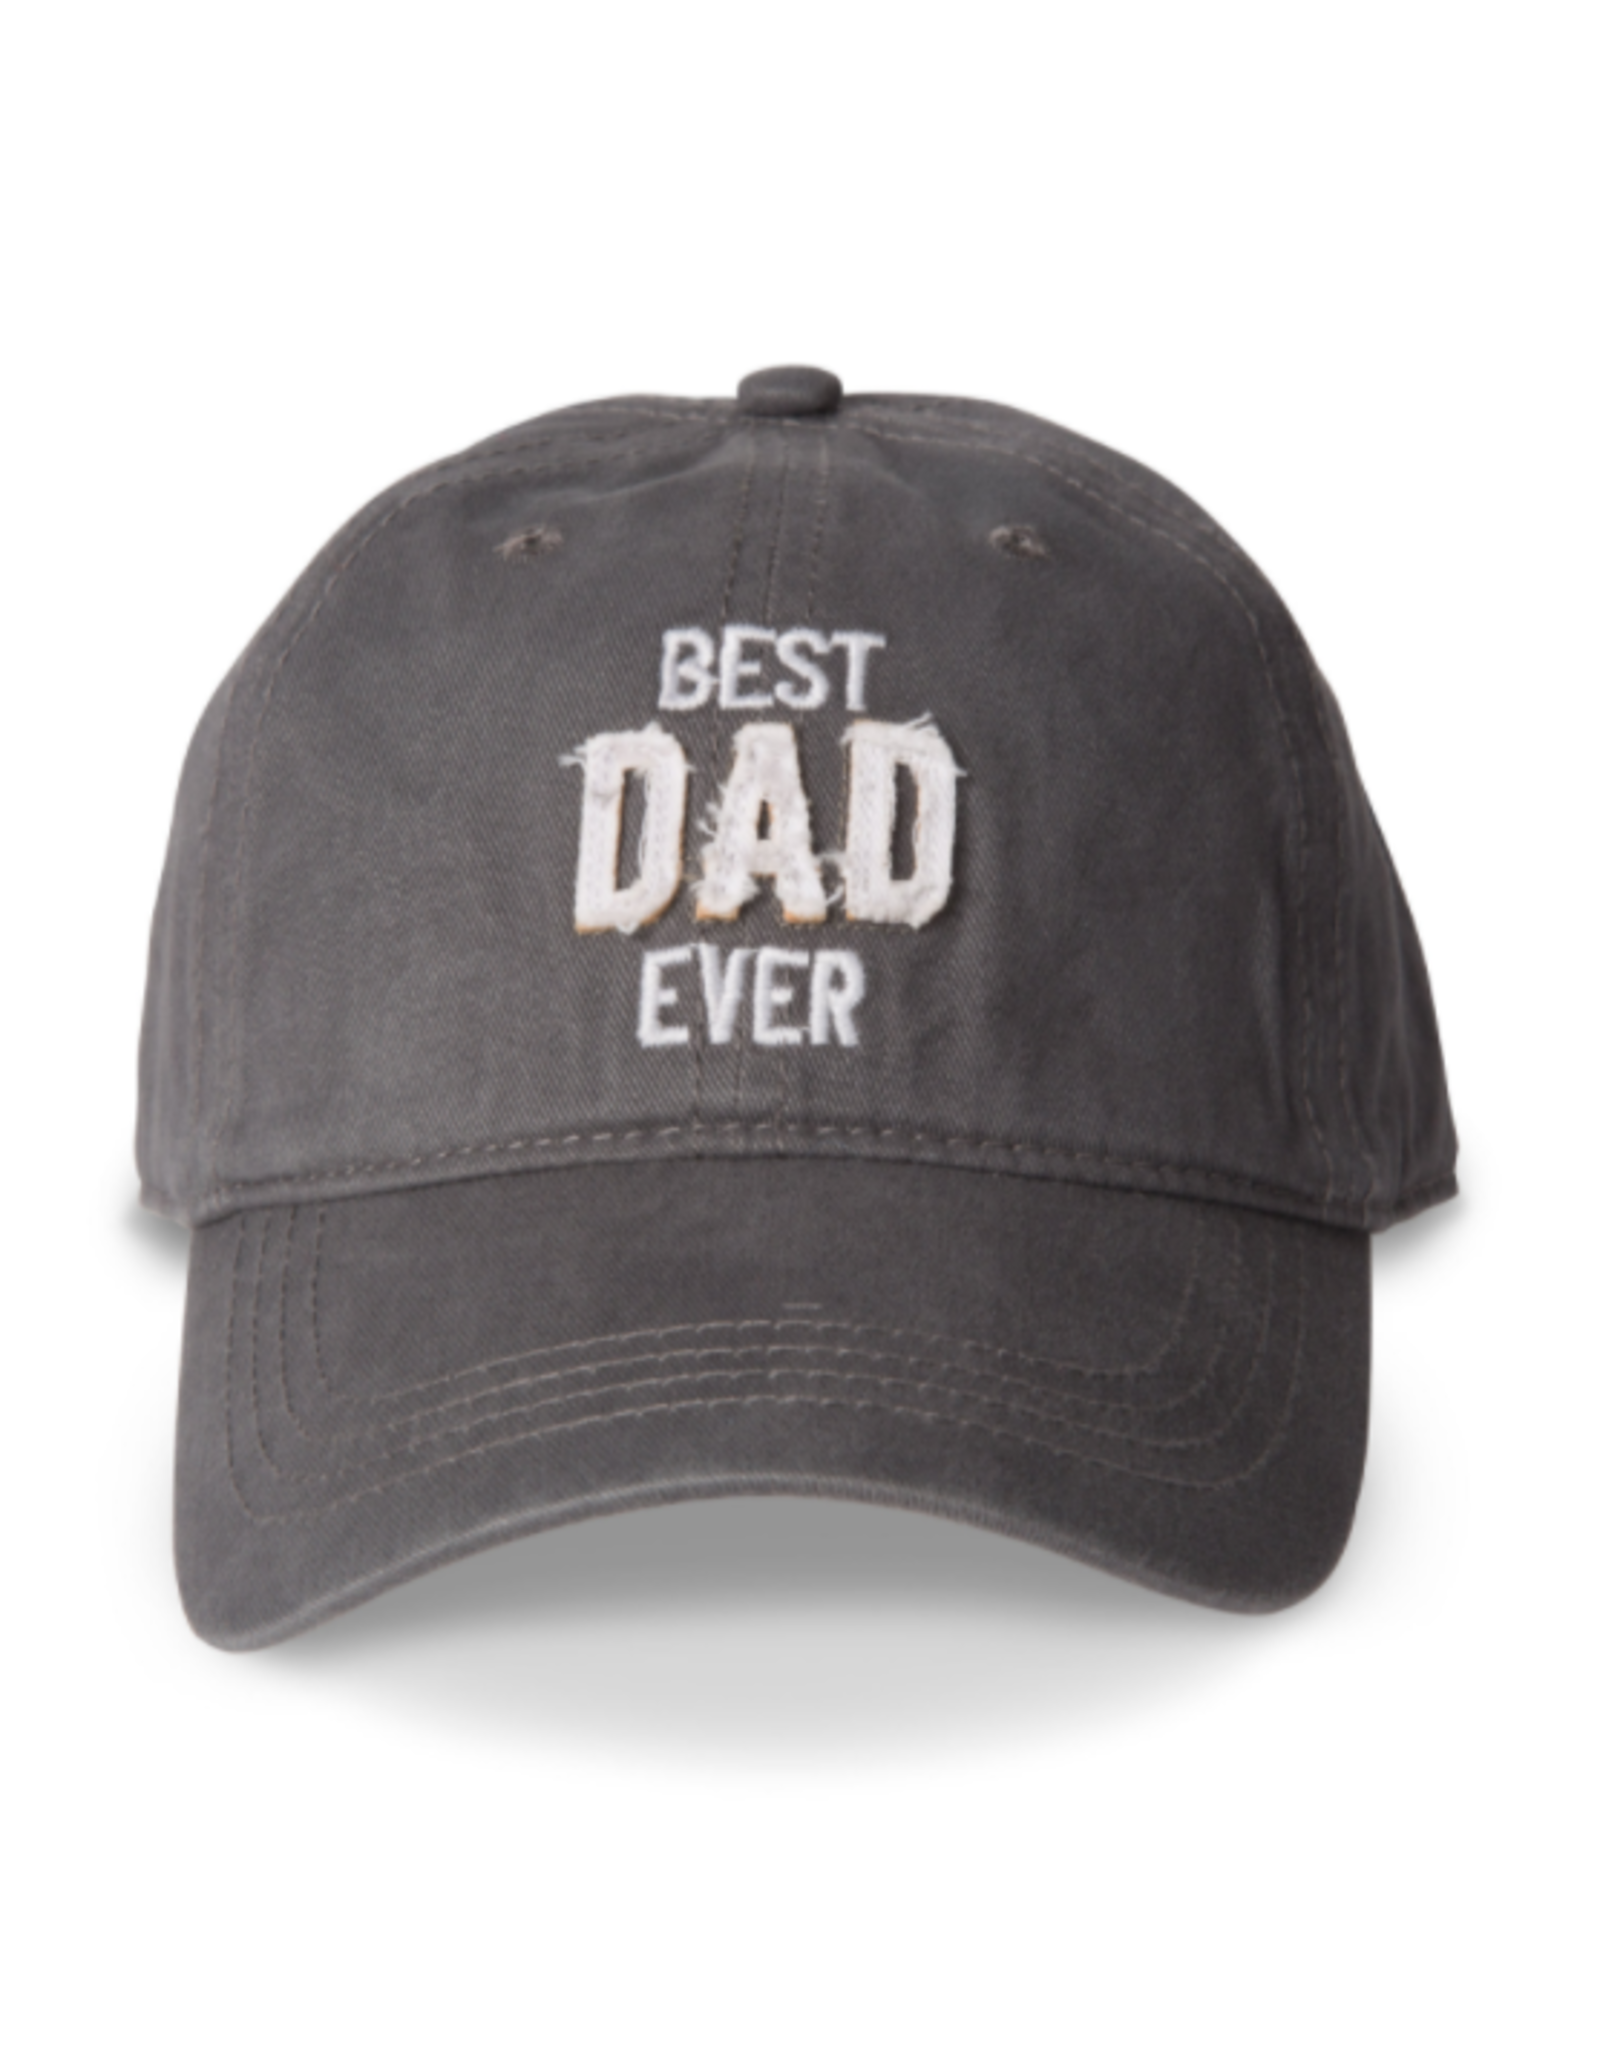 Best Dad Ever Ball Hat, grey